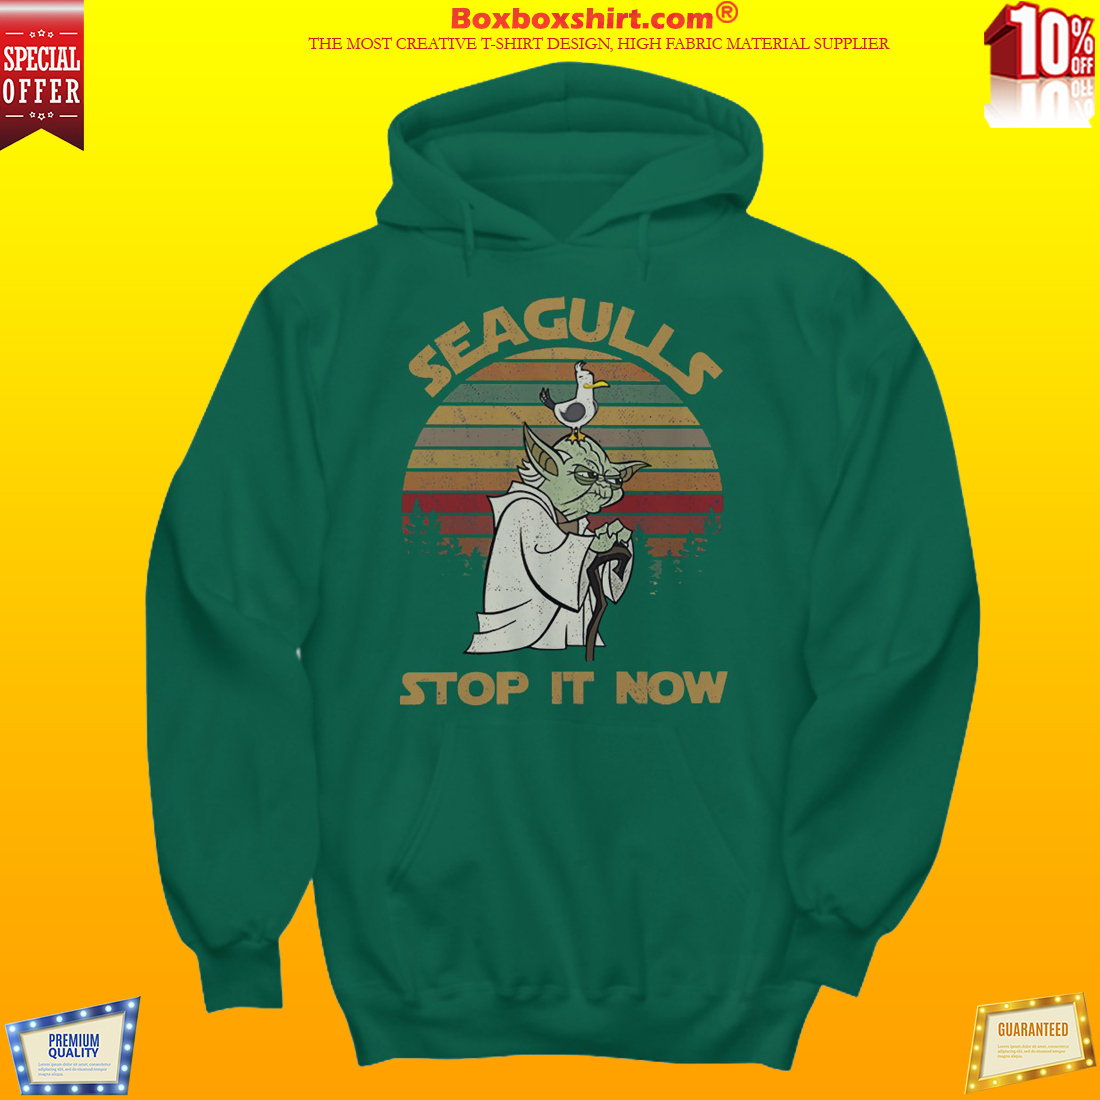 Seagulls stop it now shirt and hoodies